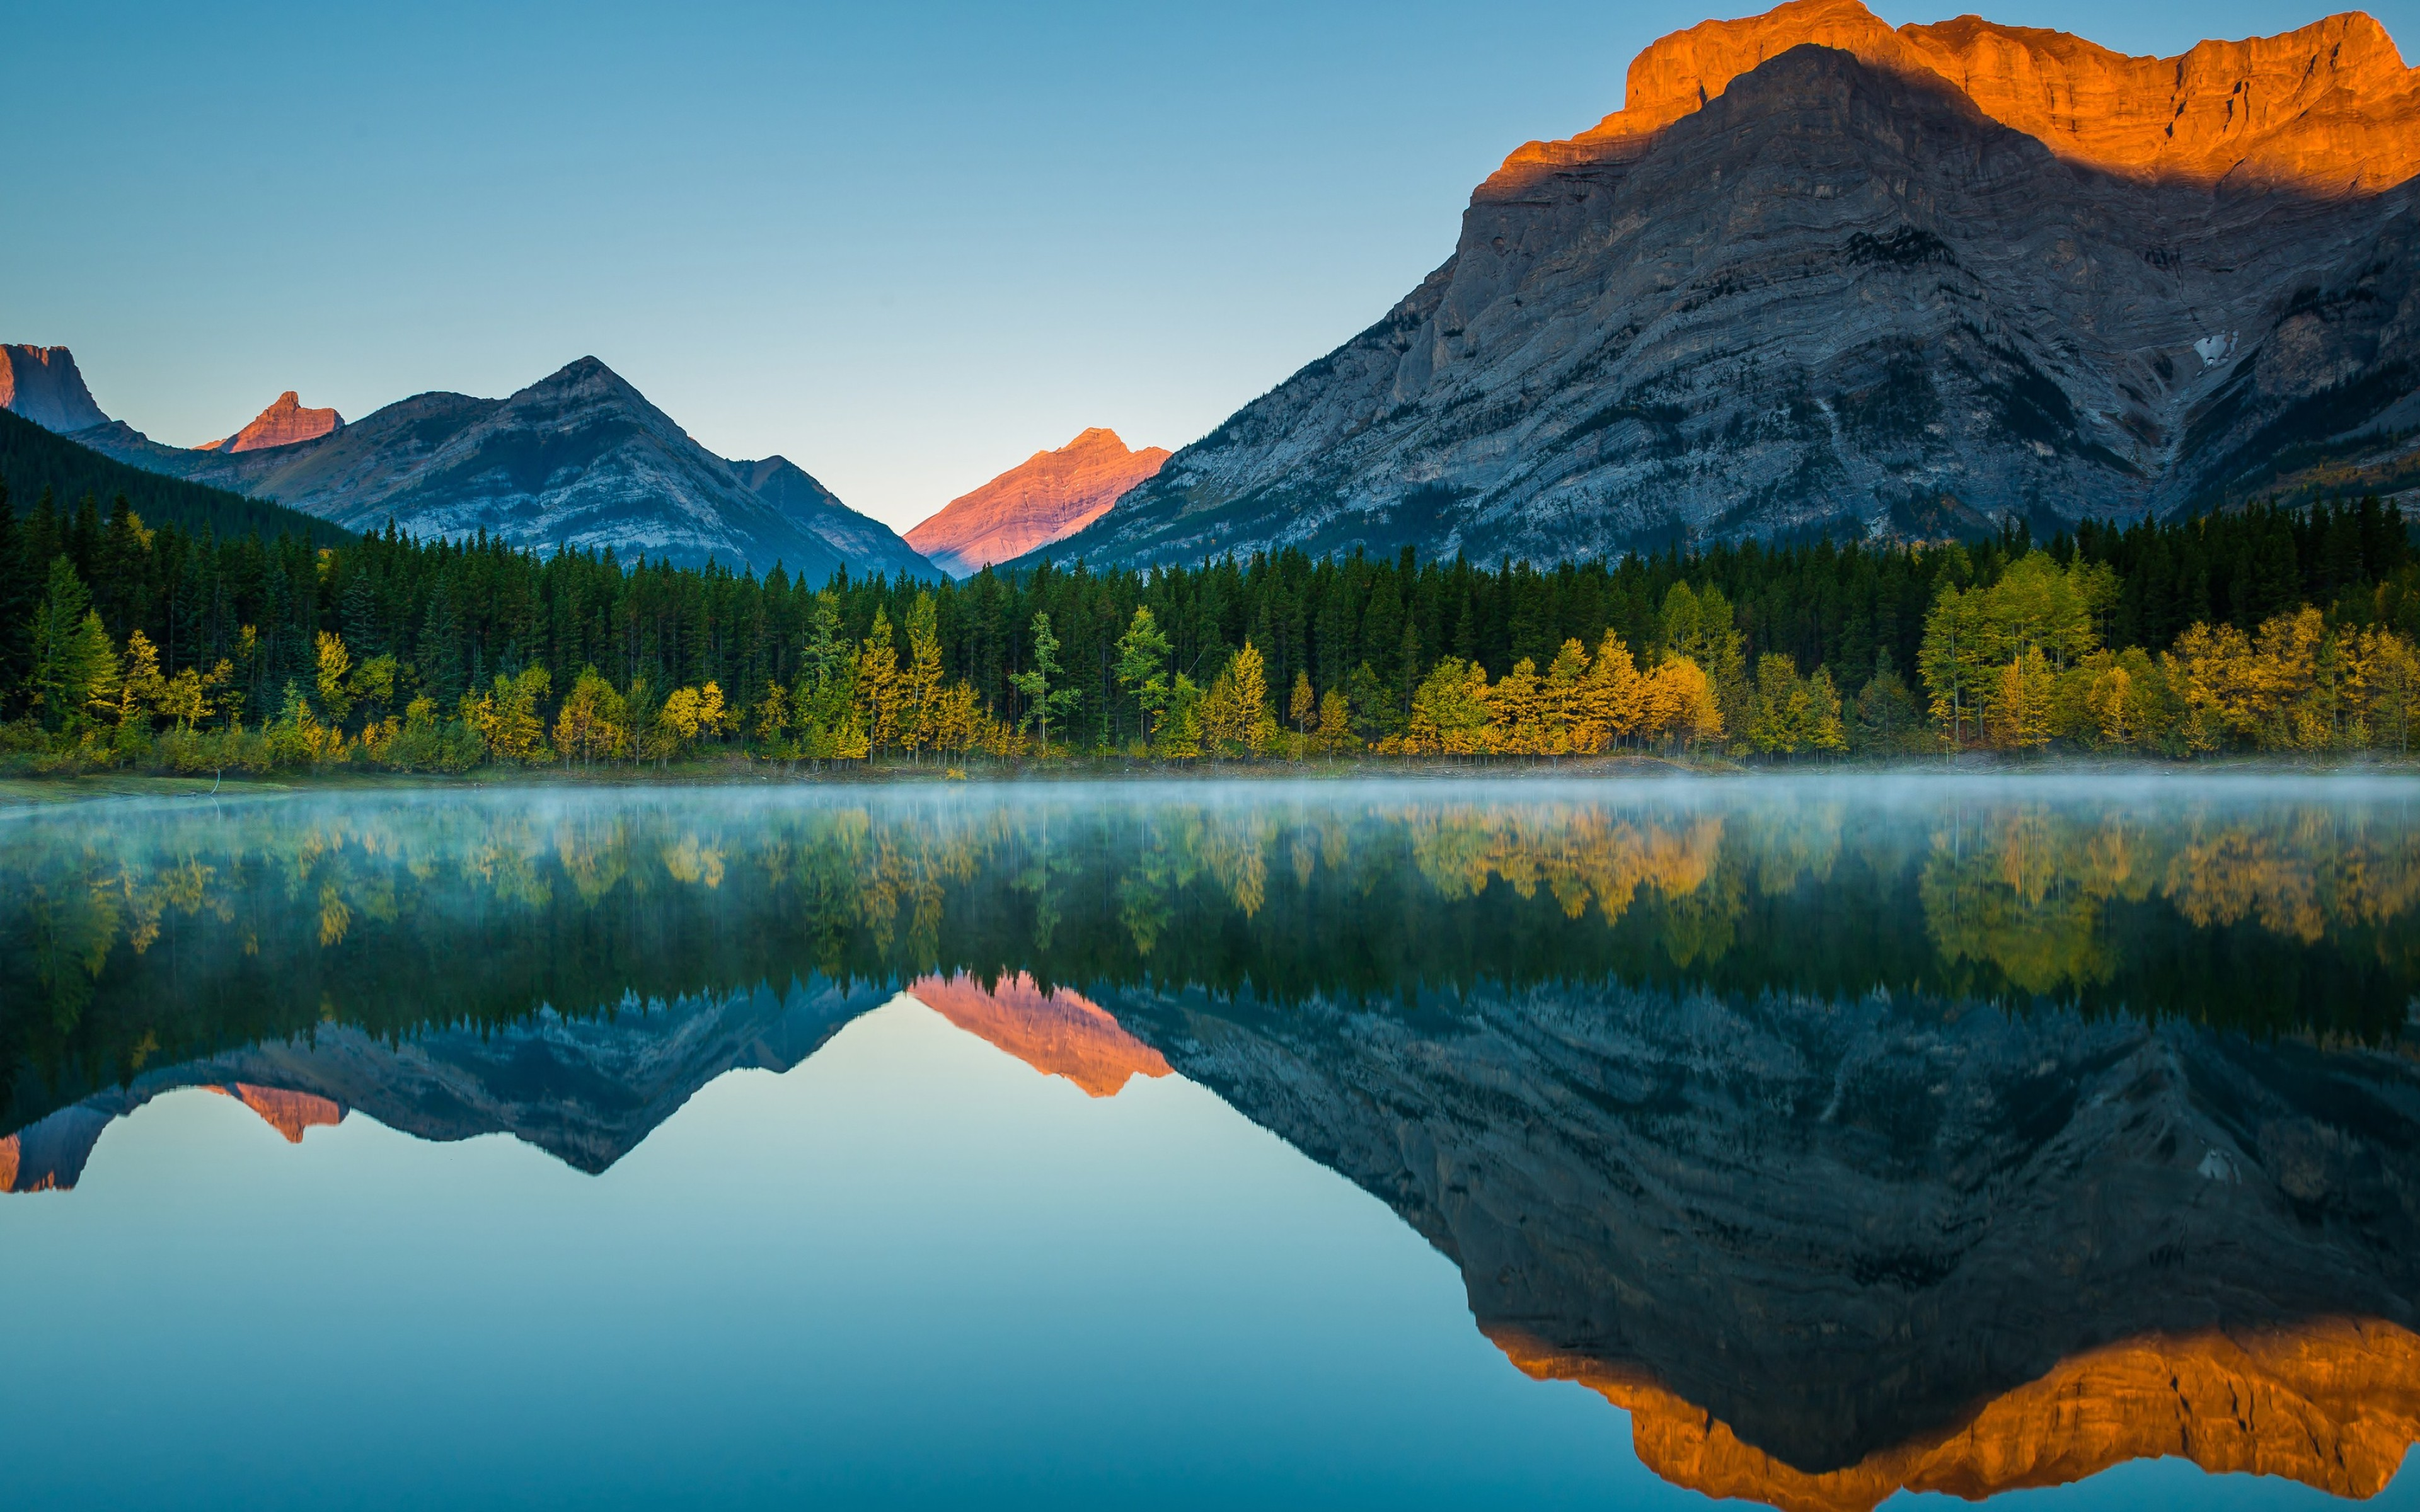 Wallpaper Mountains reflected in lake at sunset